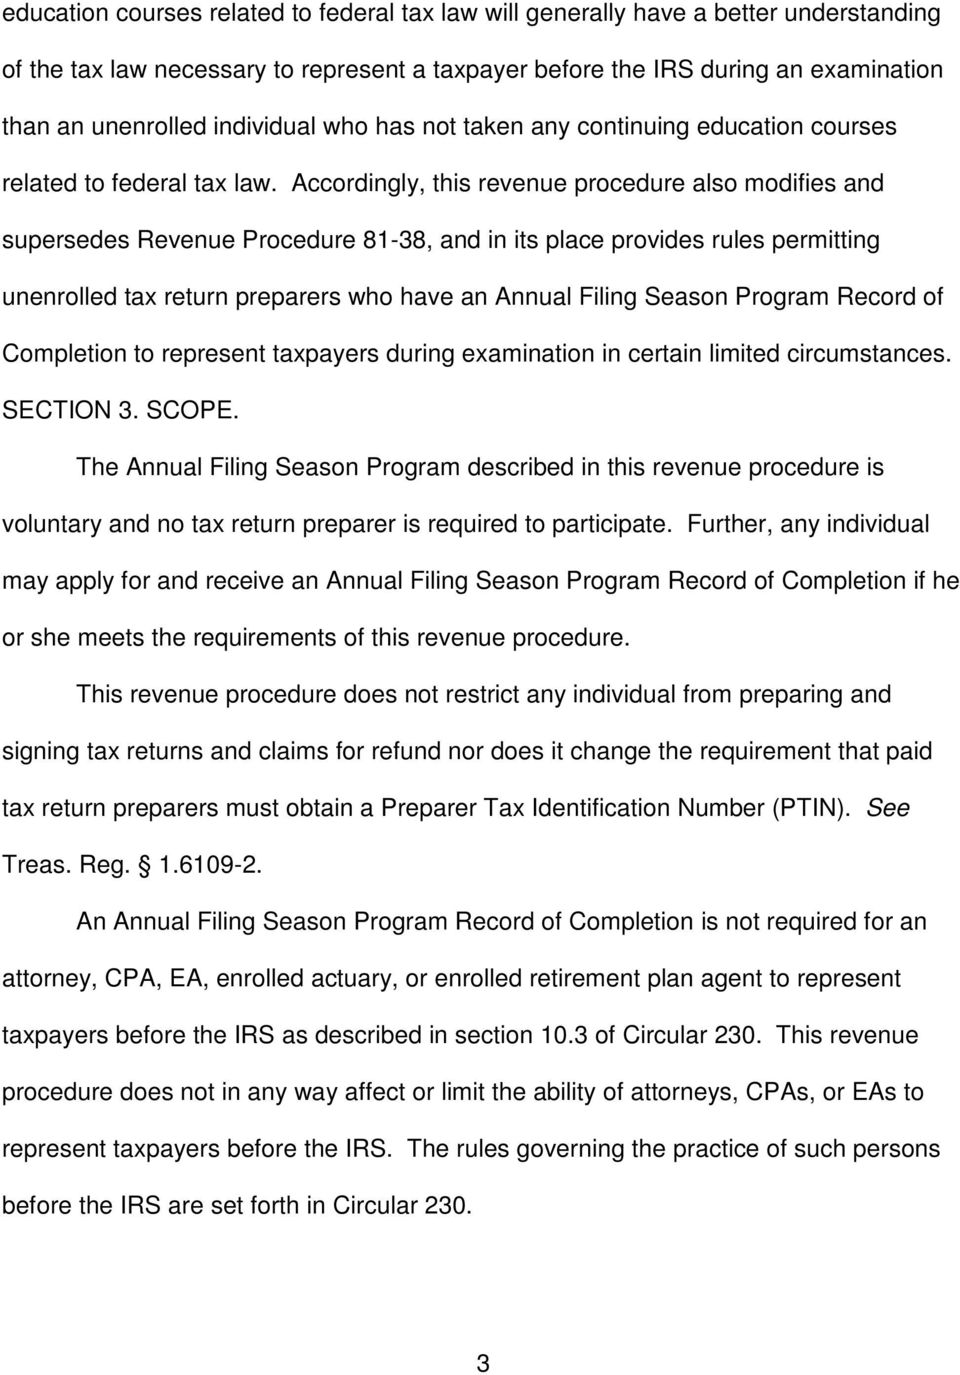 Accordingly, this revenue procedure also modifies and supersedes Revenue Procedure 81-38, and in its place provides rules permitting unenrolled tax return preparers who have an Annual Filing Season